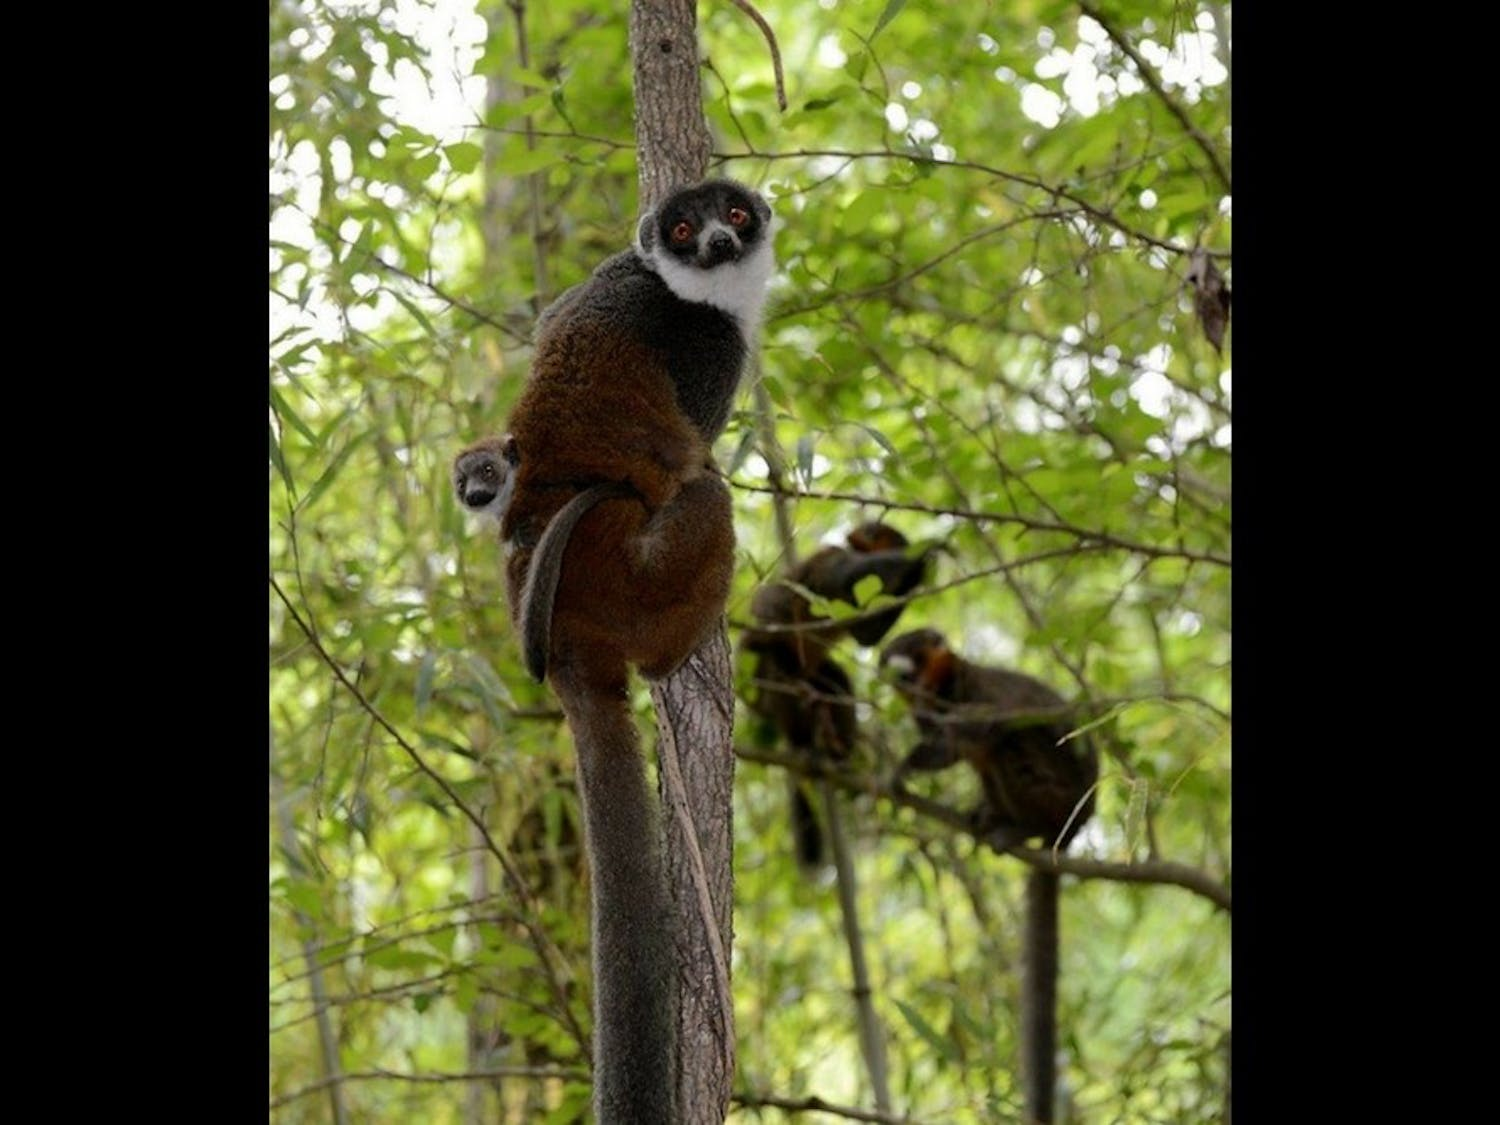 Nacho,the mongoose lemur pictured here, is one of four new lemurs.